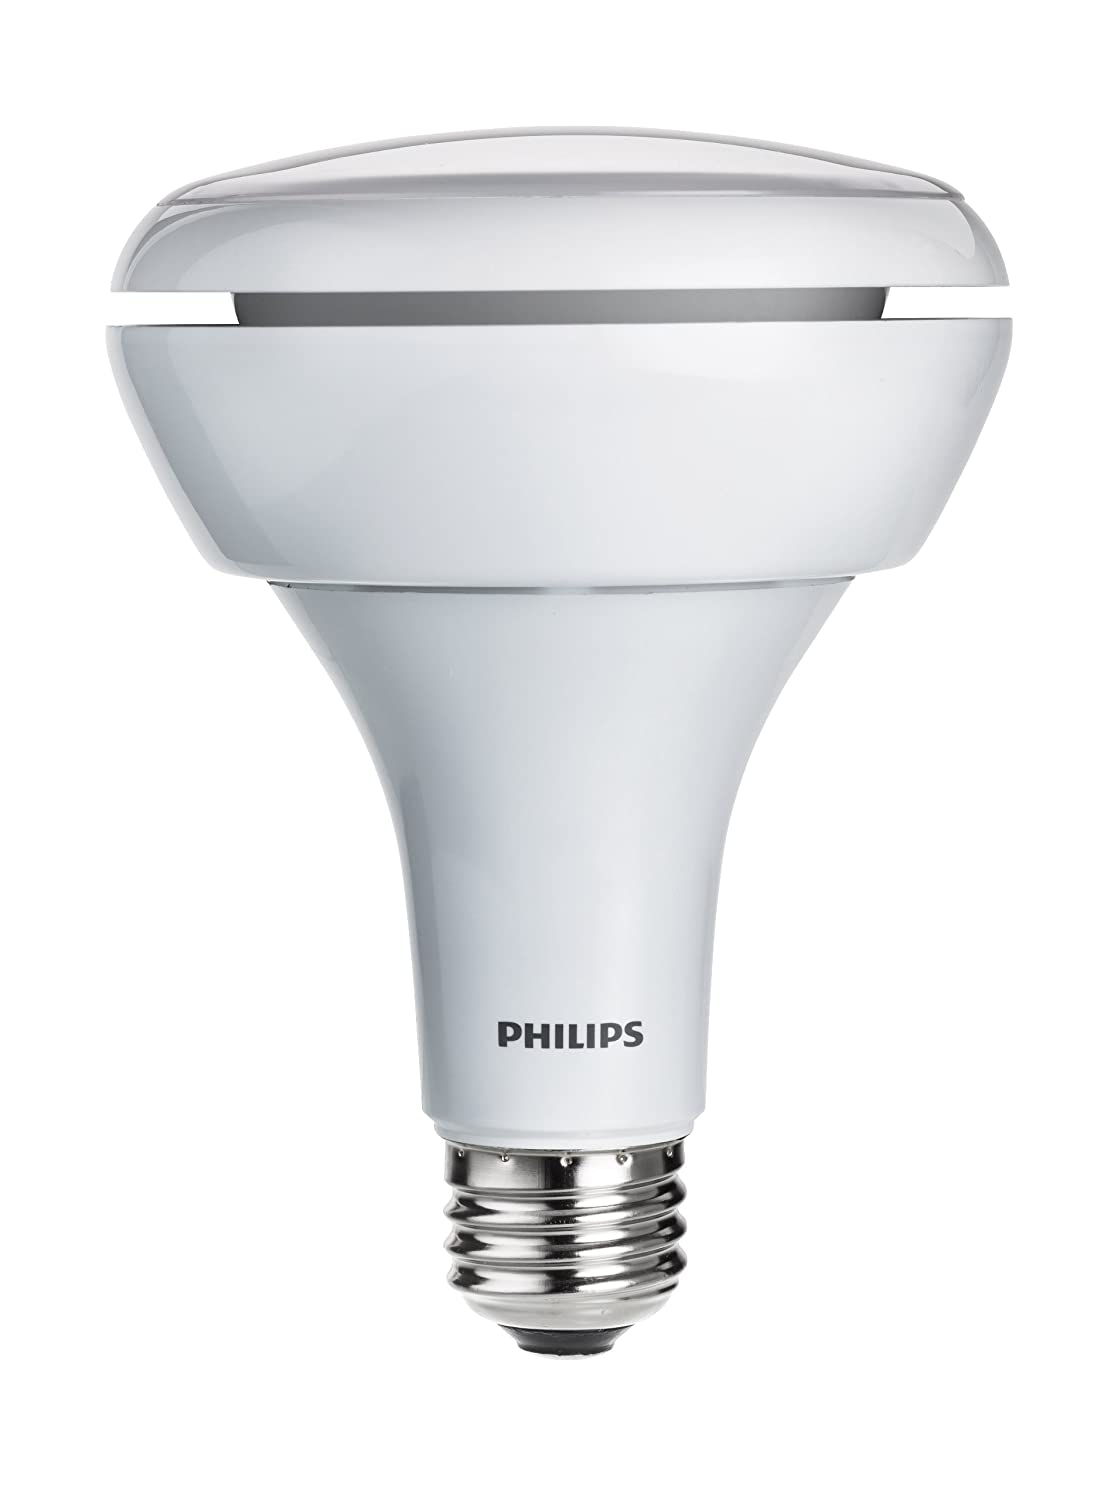 Amazon philips 429282 105 watt 65 watt br30 indoor flood led amazon philips 429282 105 watt 65 watt br30 indoor flood led light bulb dimmable home improvement arubaitofo Image collections